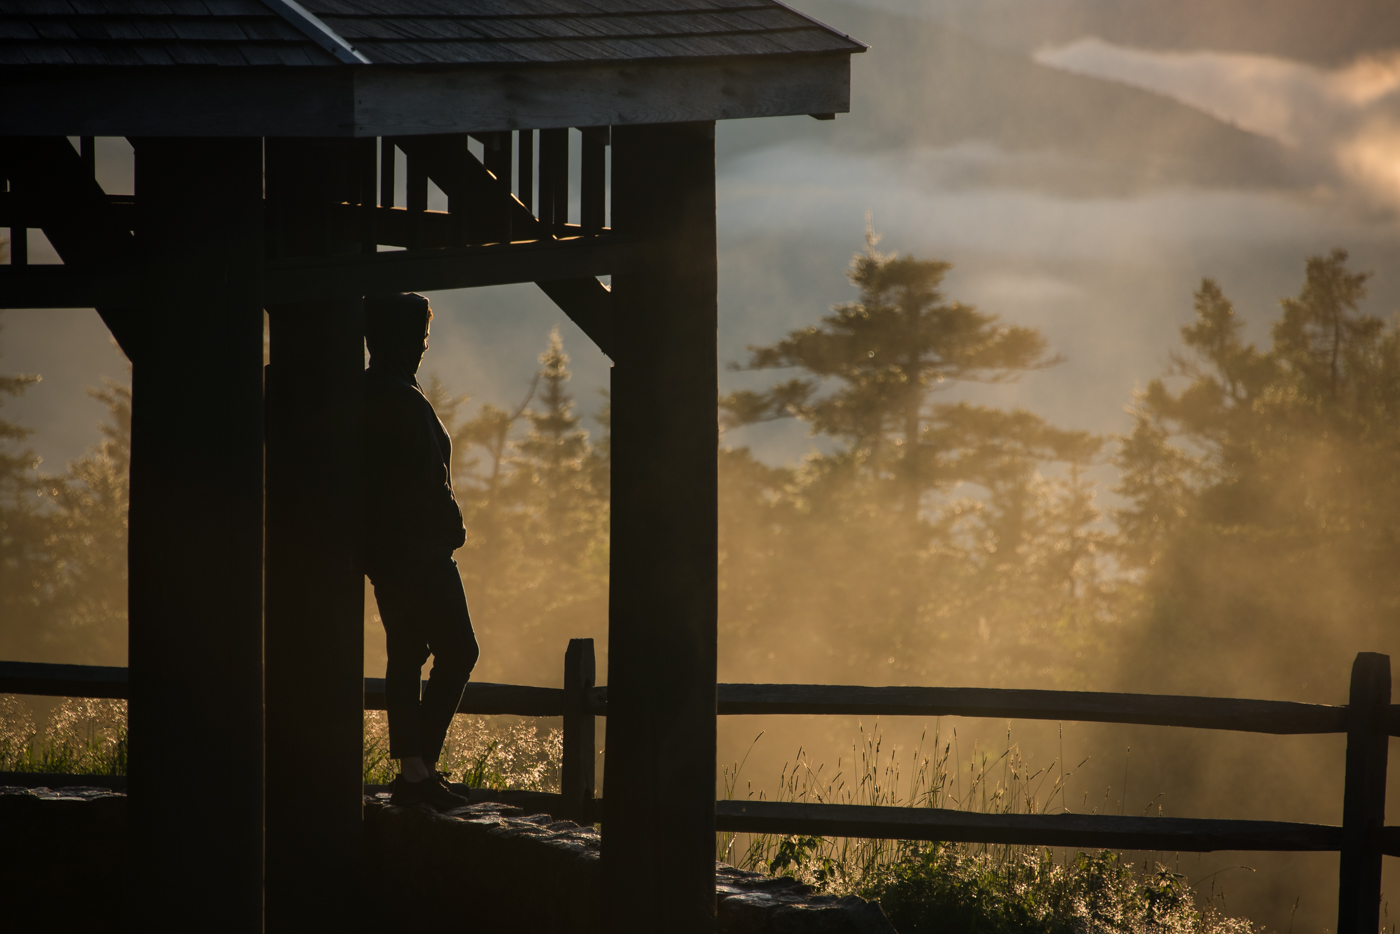 a woman admires the sunset off the kancamagus highway in the white mountains, new hampshire, photographed by jamie bannon photography.